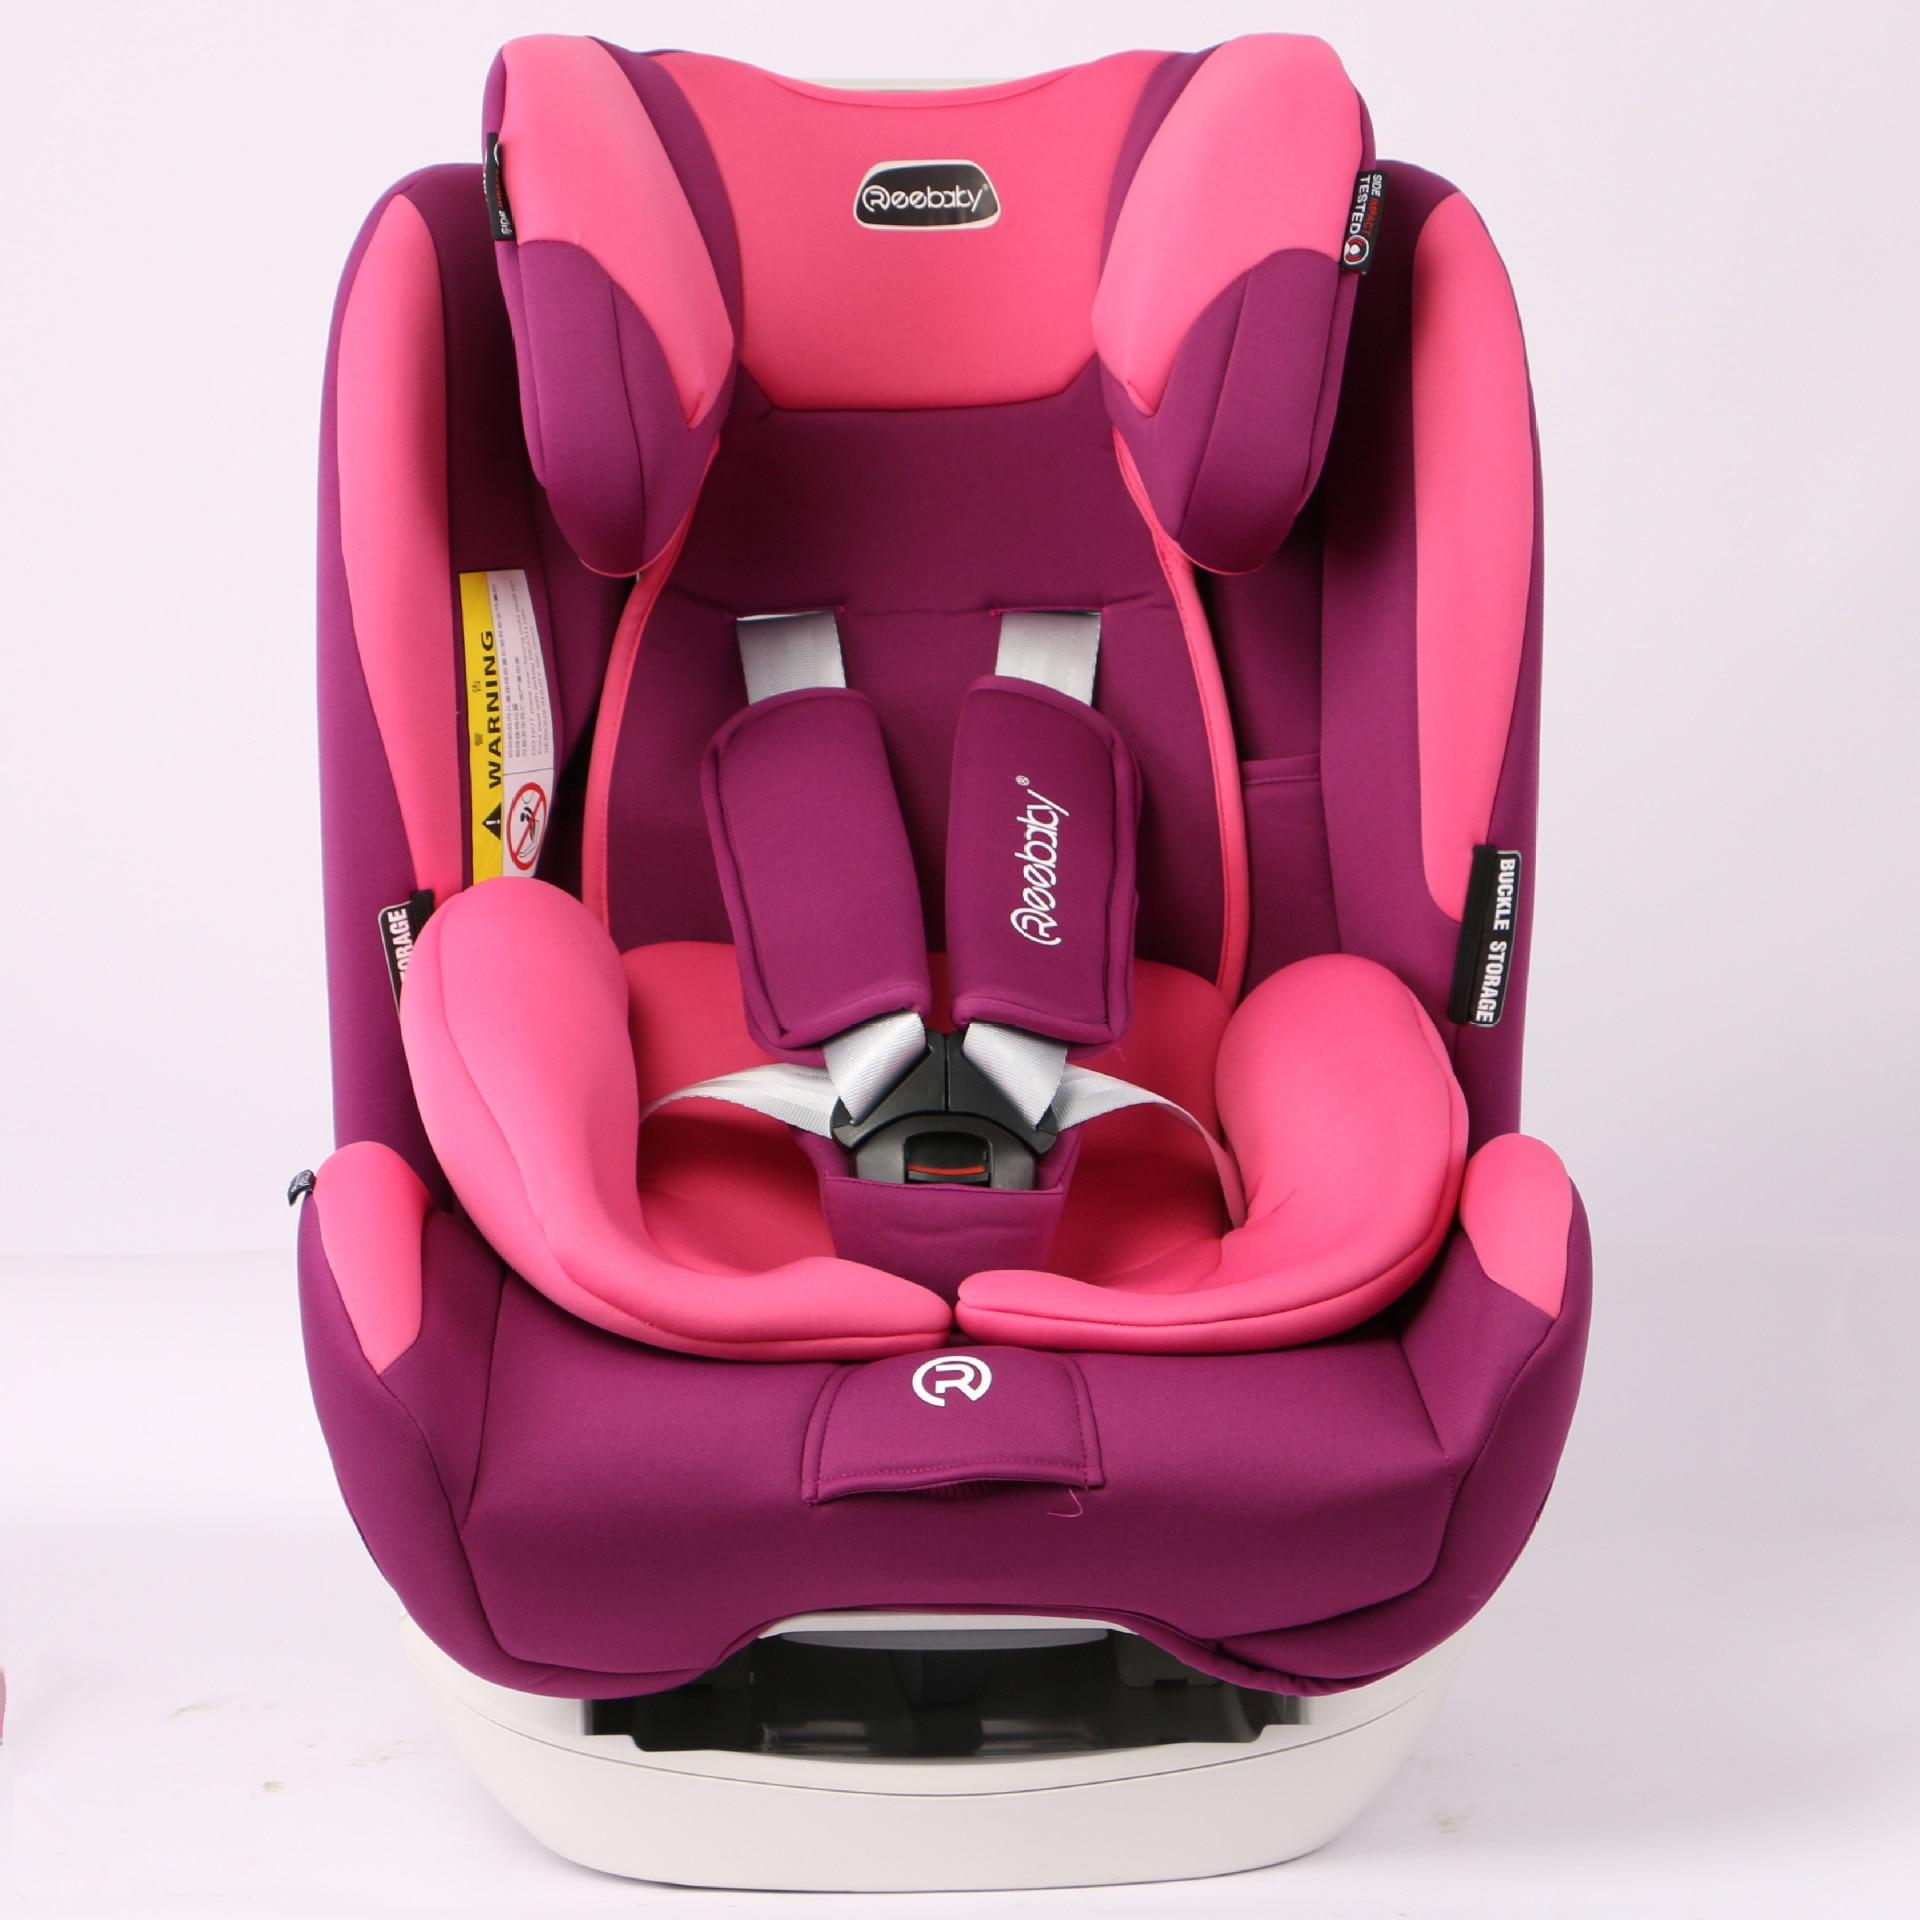 Safety 1st Convertible Car Seat Child Car Safety Seat Isofix Latch Hard Interface Baby Safety Car Booster Seat